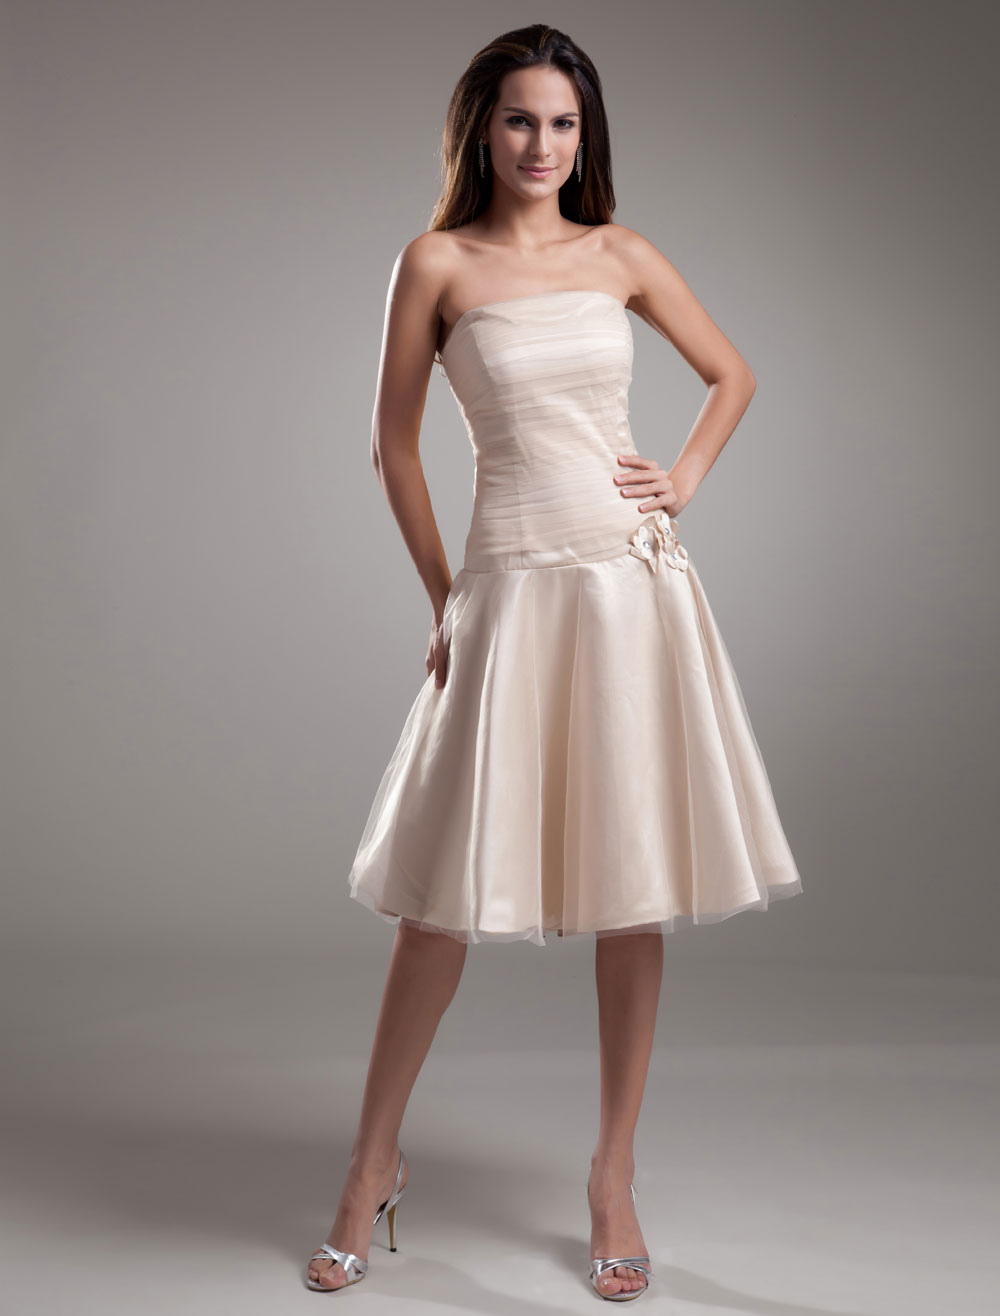 Fabulous A-line Champagne Tulle Flower Strapless Knee-Length Fashion Bridesmaid Dress